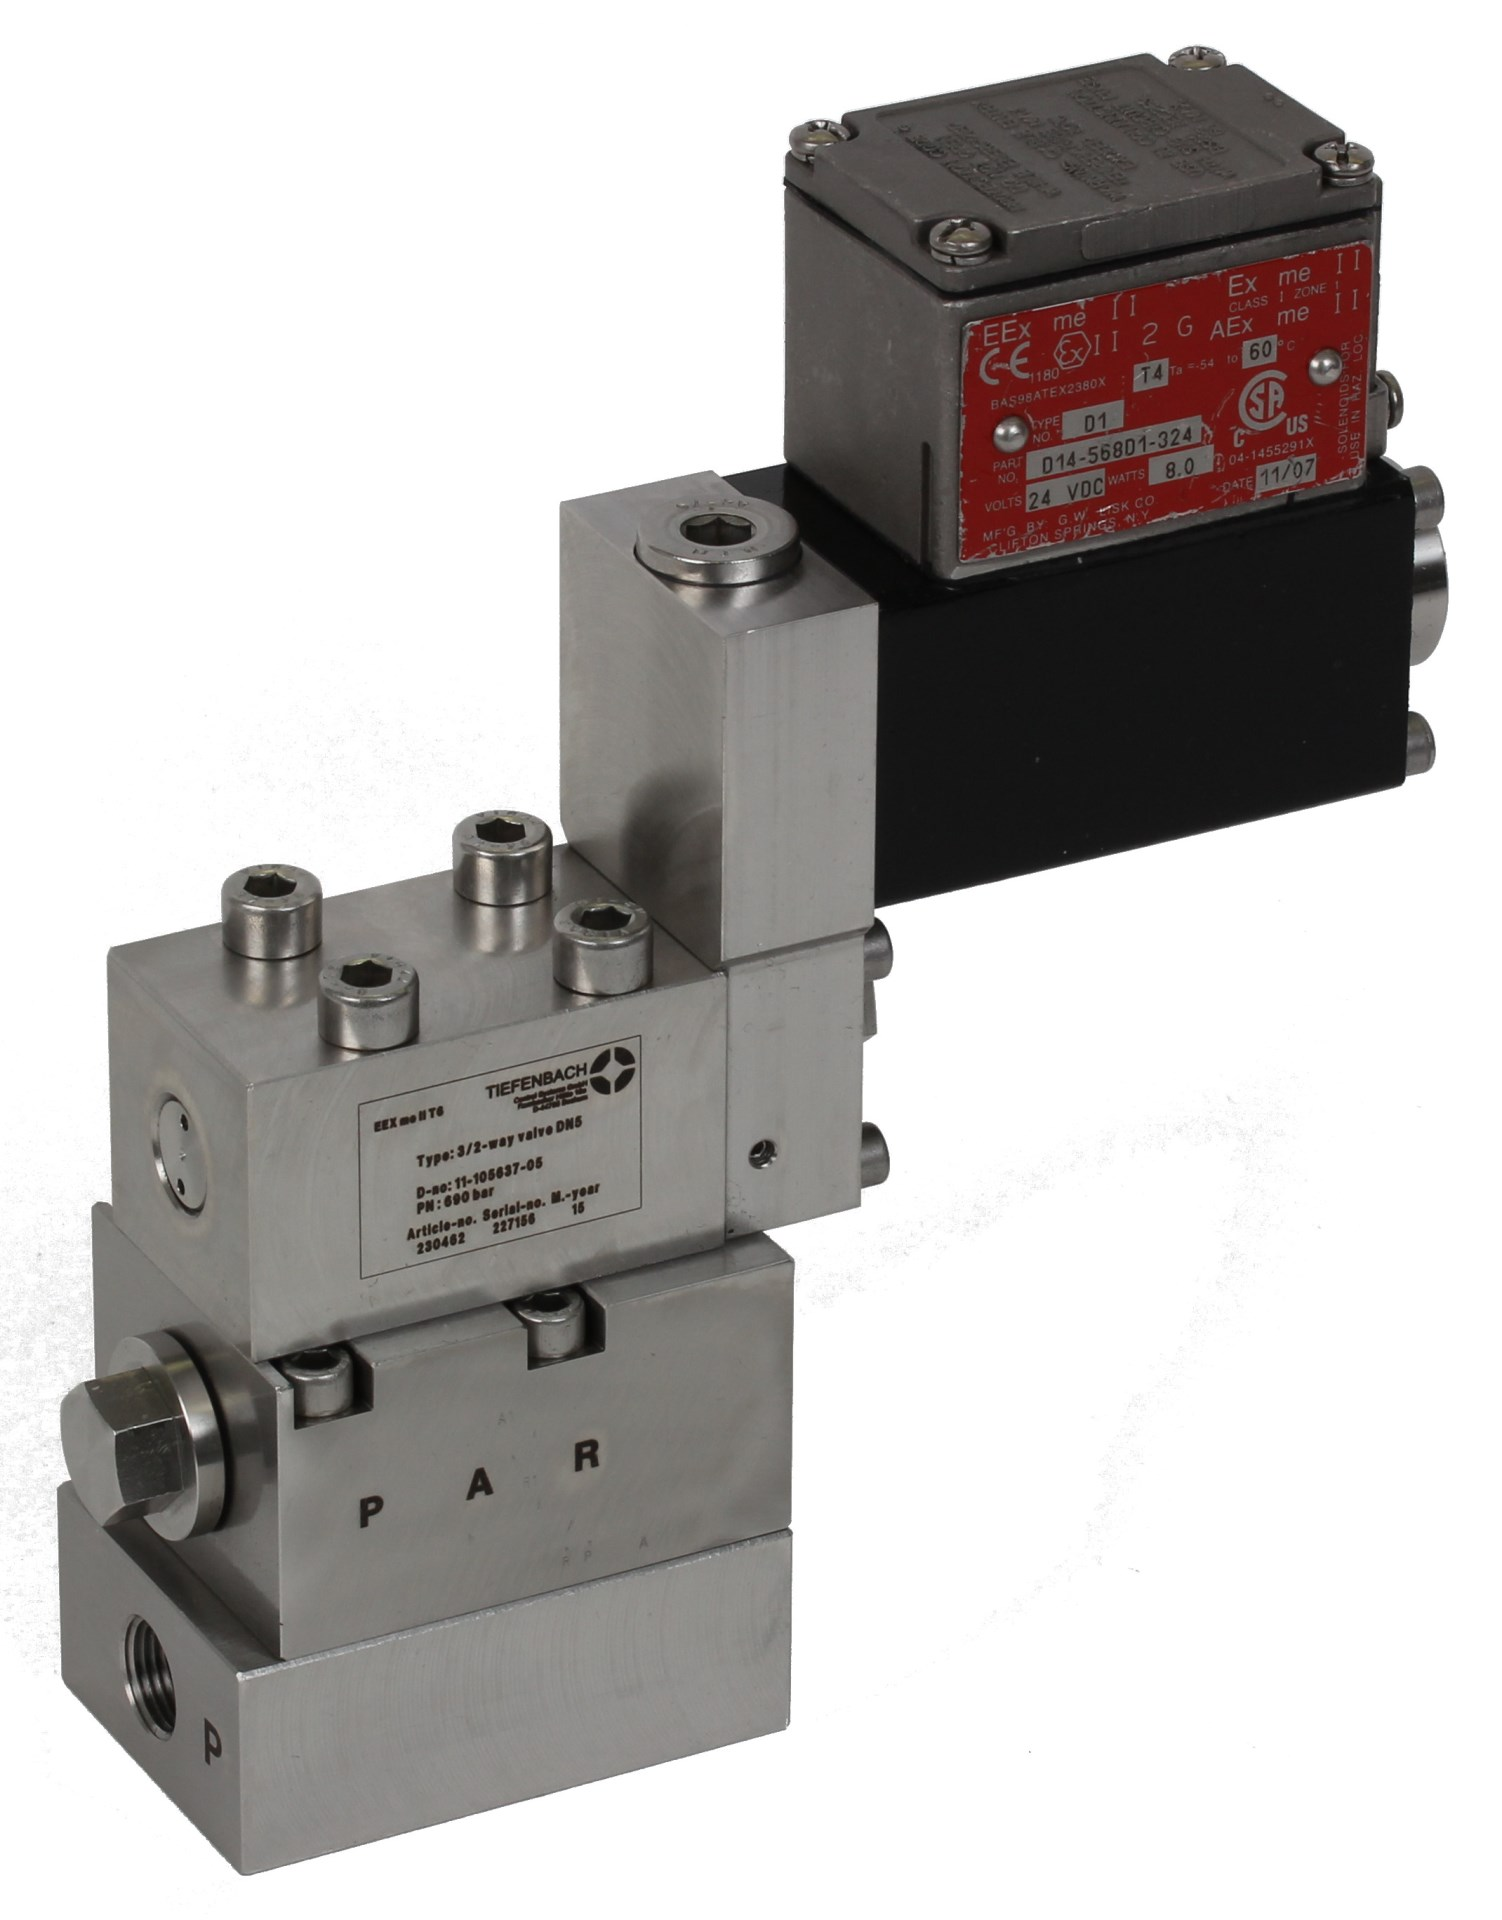 magnetventil solenoid operated ventiler hydrauliske valve hydraulic direct operated acting Ex Tiefenbach Forhandler